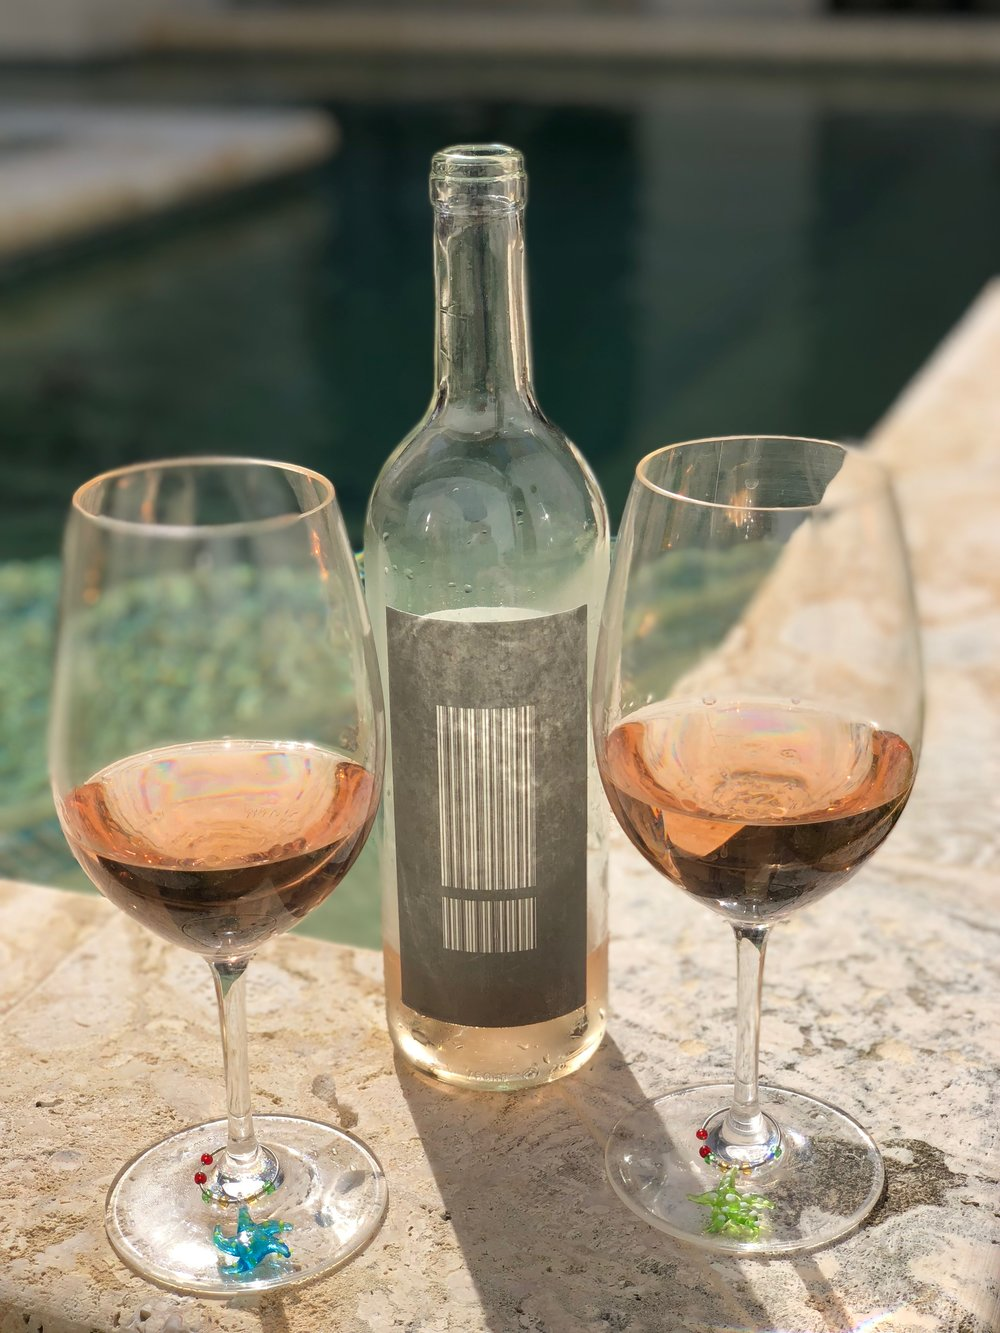 """- Matt Iaconis Pinot Noir Rosé Santa Rita Hills 2017 falls in the middle of the spectrum from acidic dry to fleshy fruity, so we dub it """"a real crowd pleaser."""" We'd buy it again.Angel Price $13"""